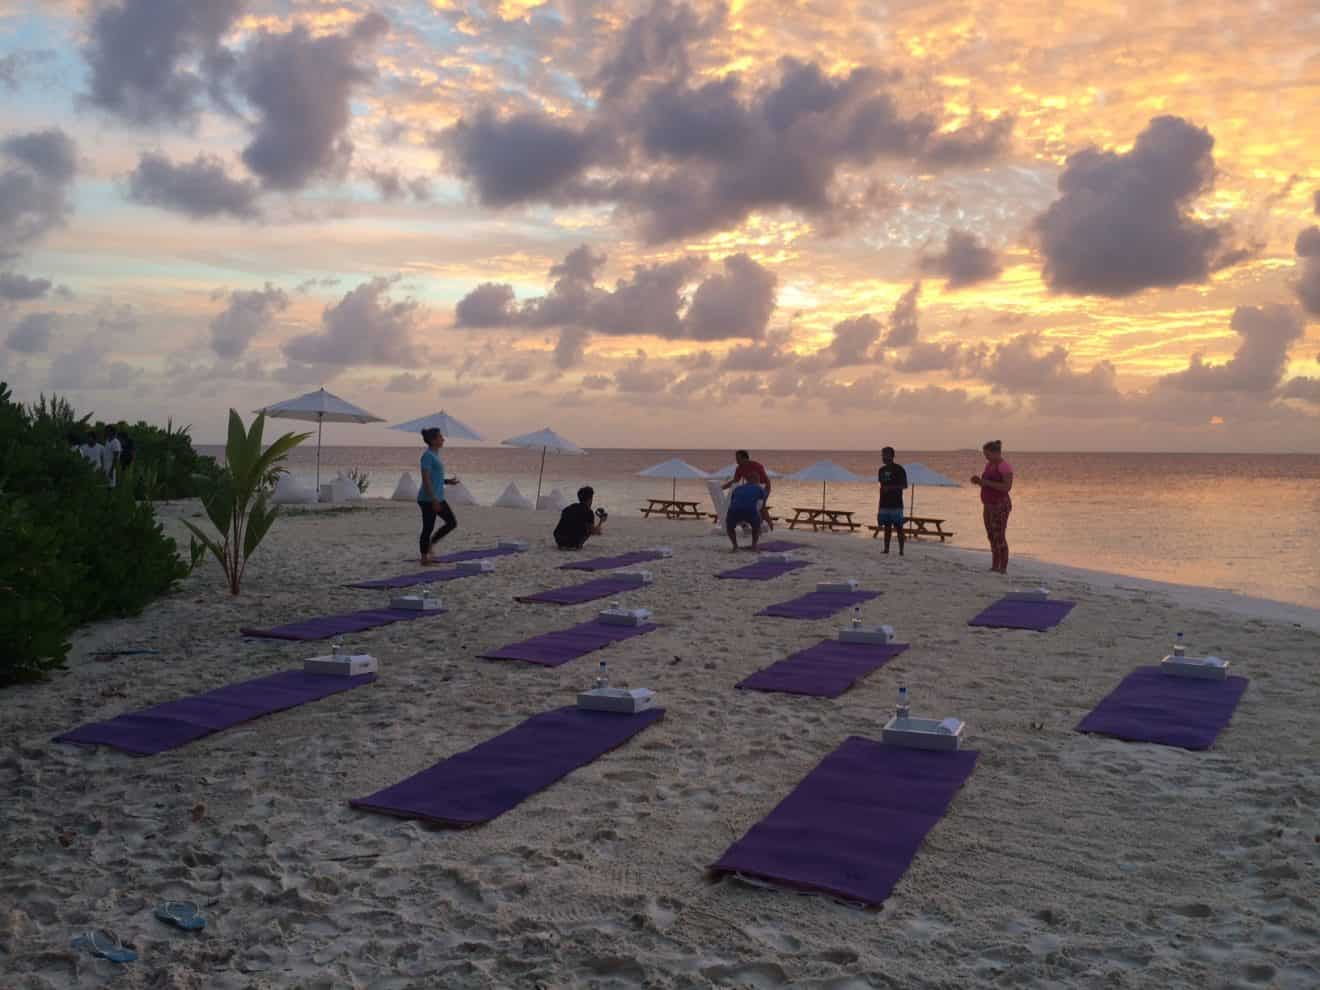 Yoga with a view like that, whats not to love?